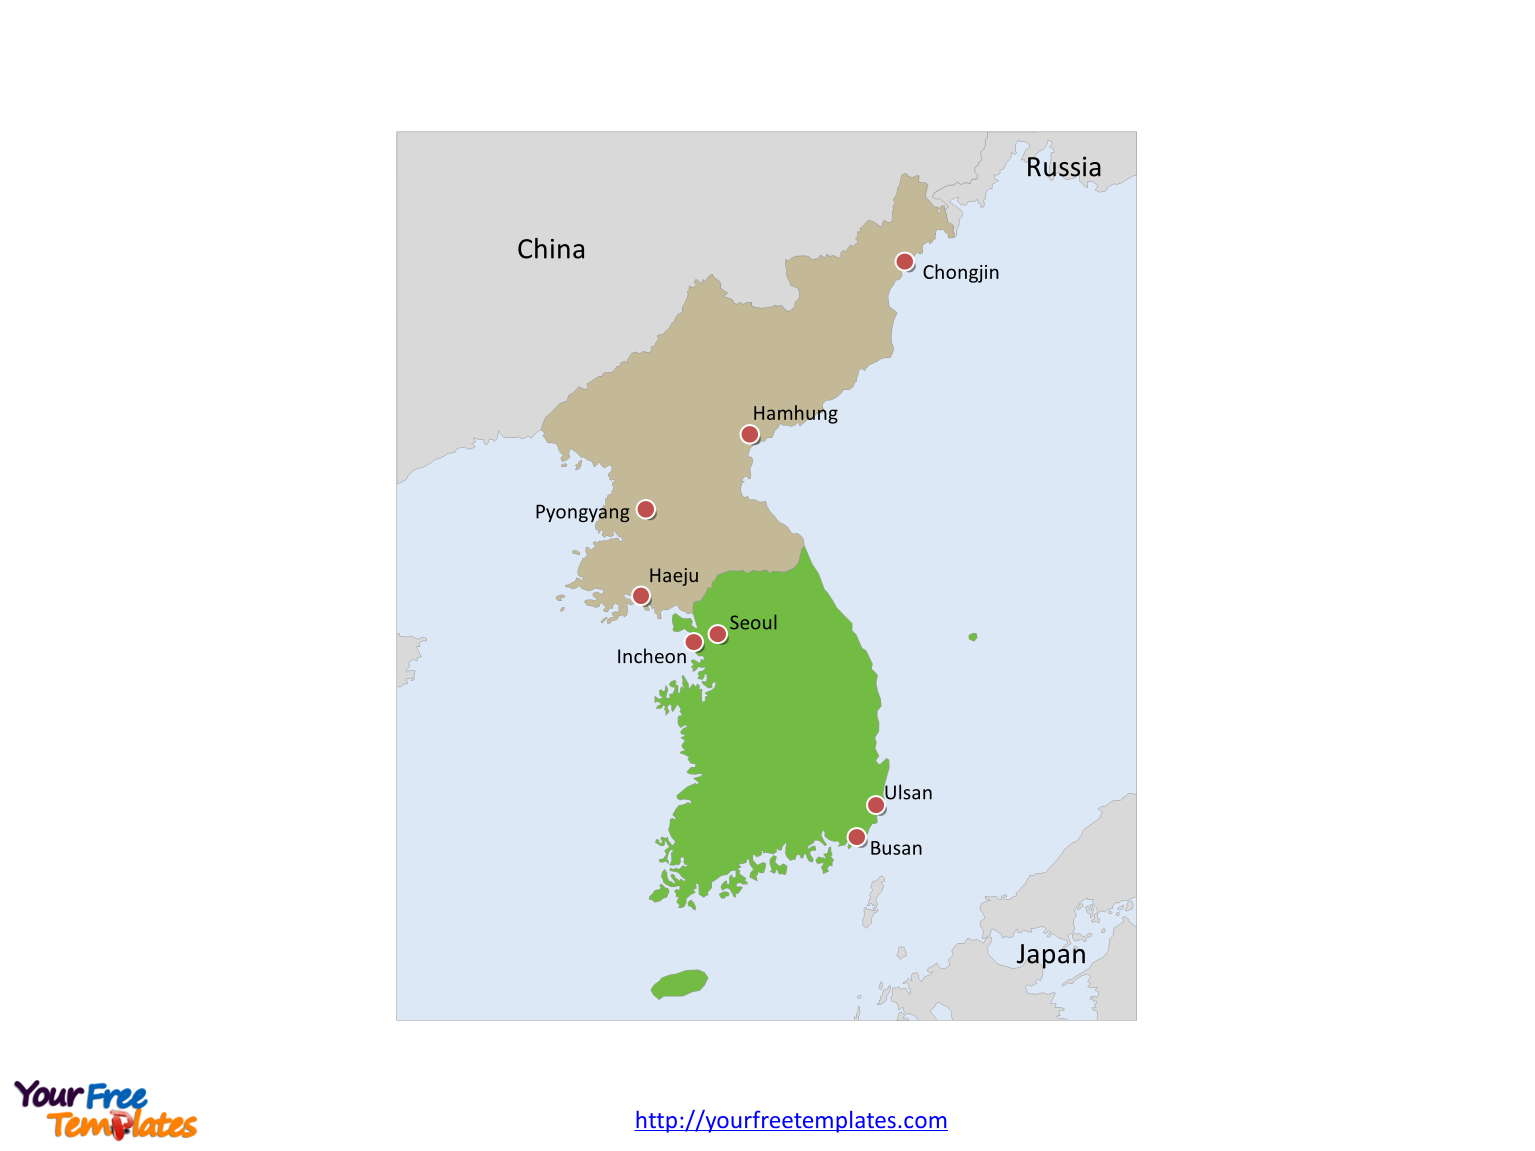 Free Korea Peninsula Editable Map Free PowerPoint Templates - Japan map political